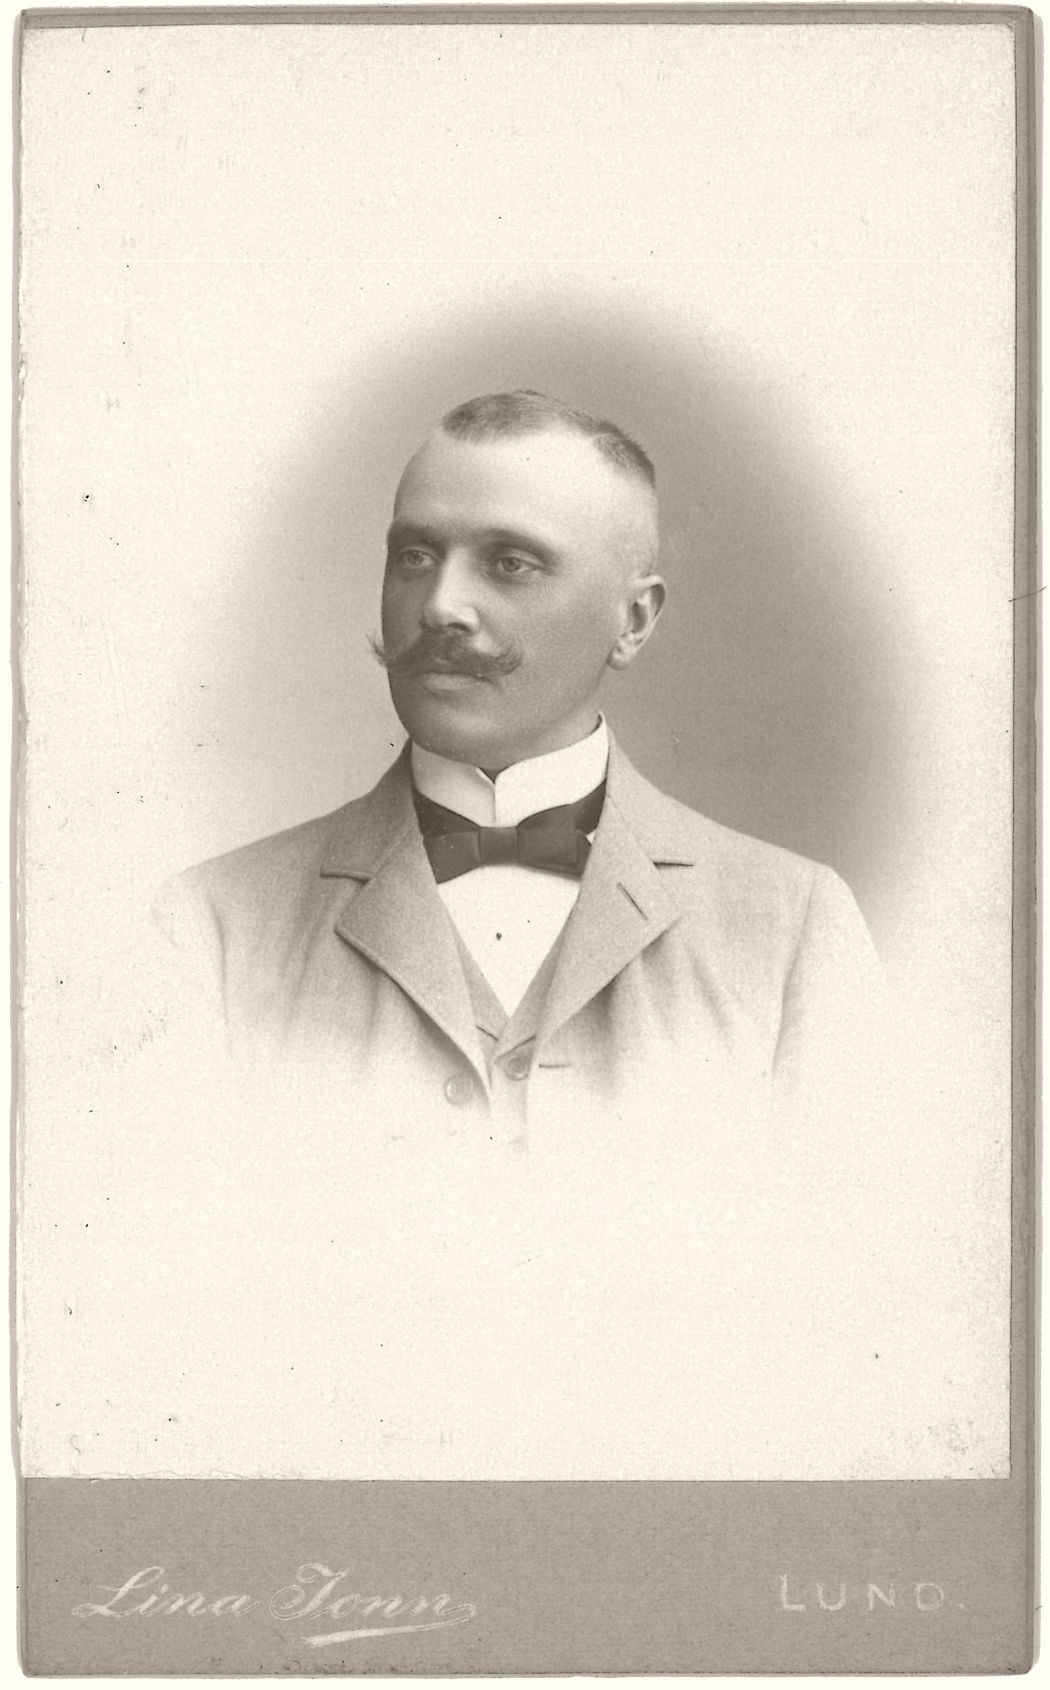 Ernst A. Kallenberg (1866-1947), Swedish jurist and professor at Lund University.